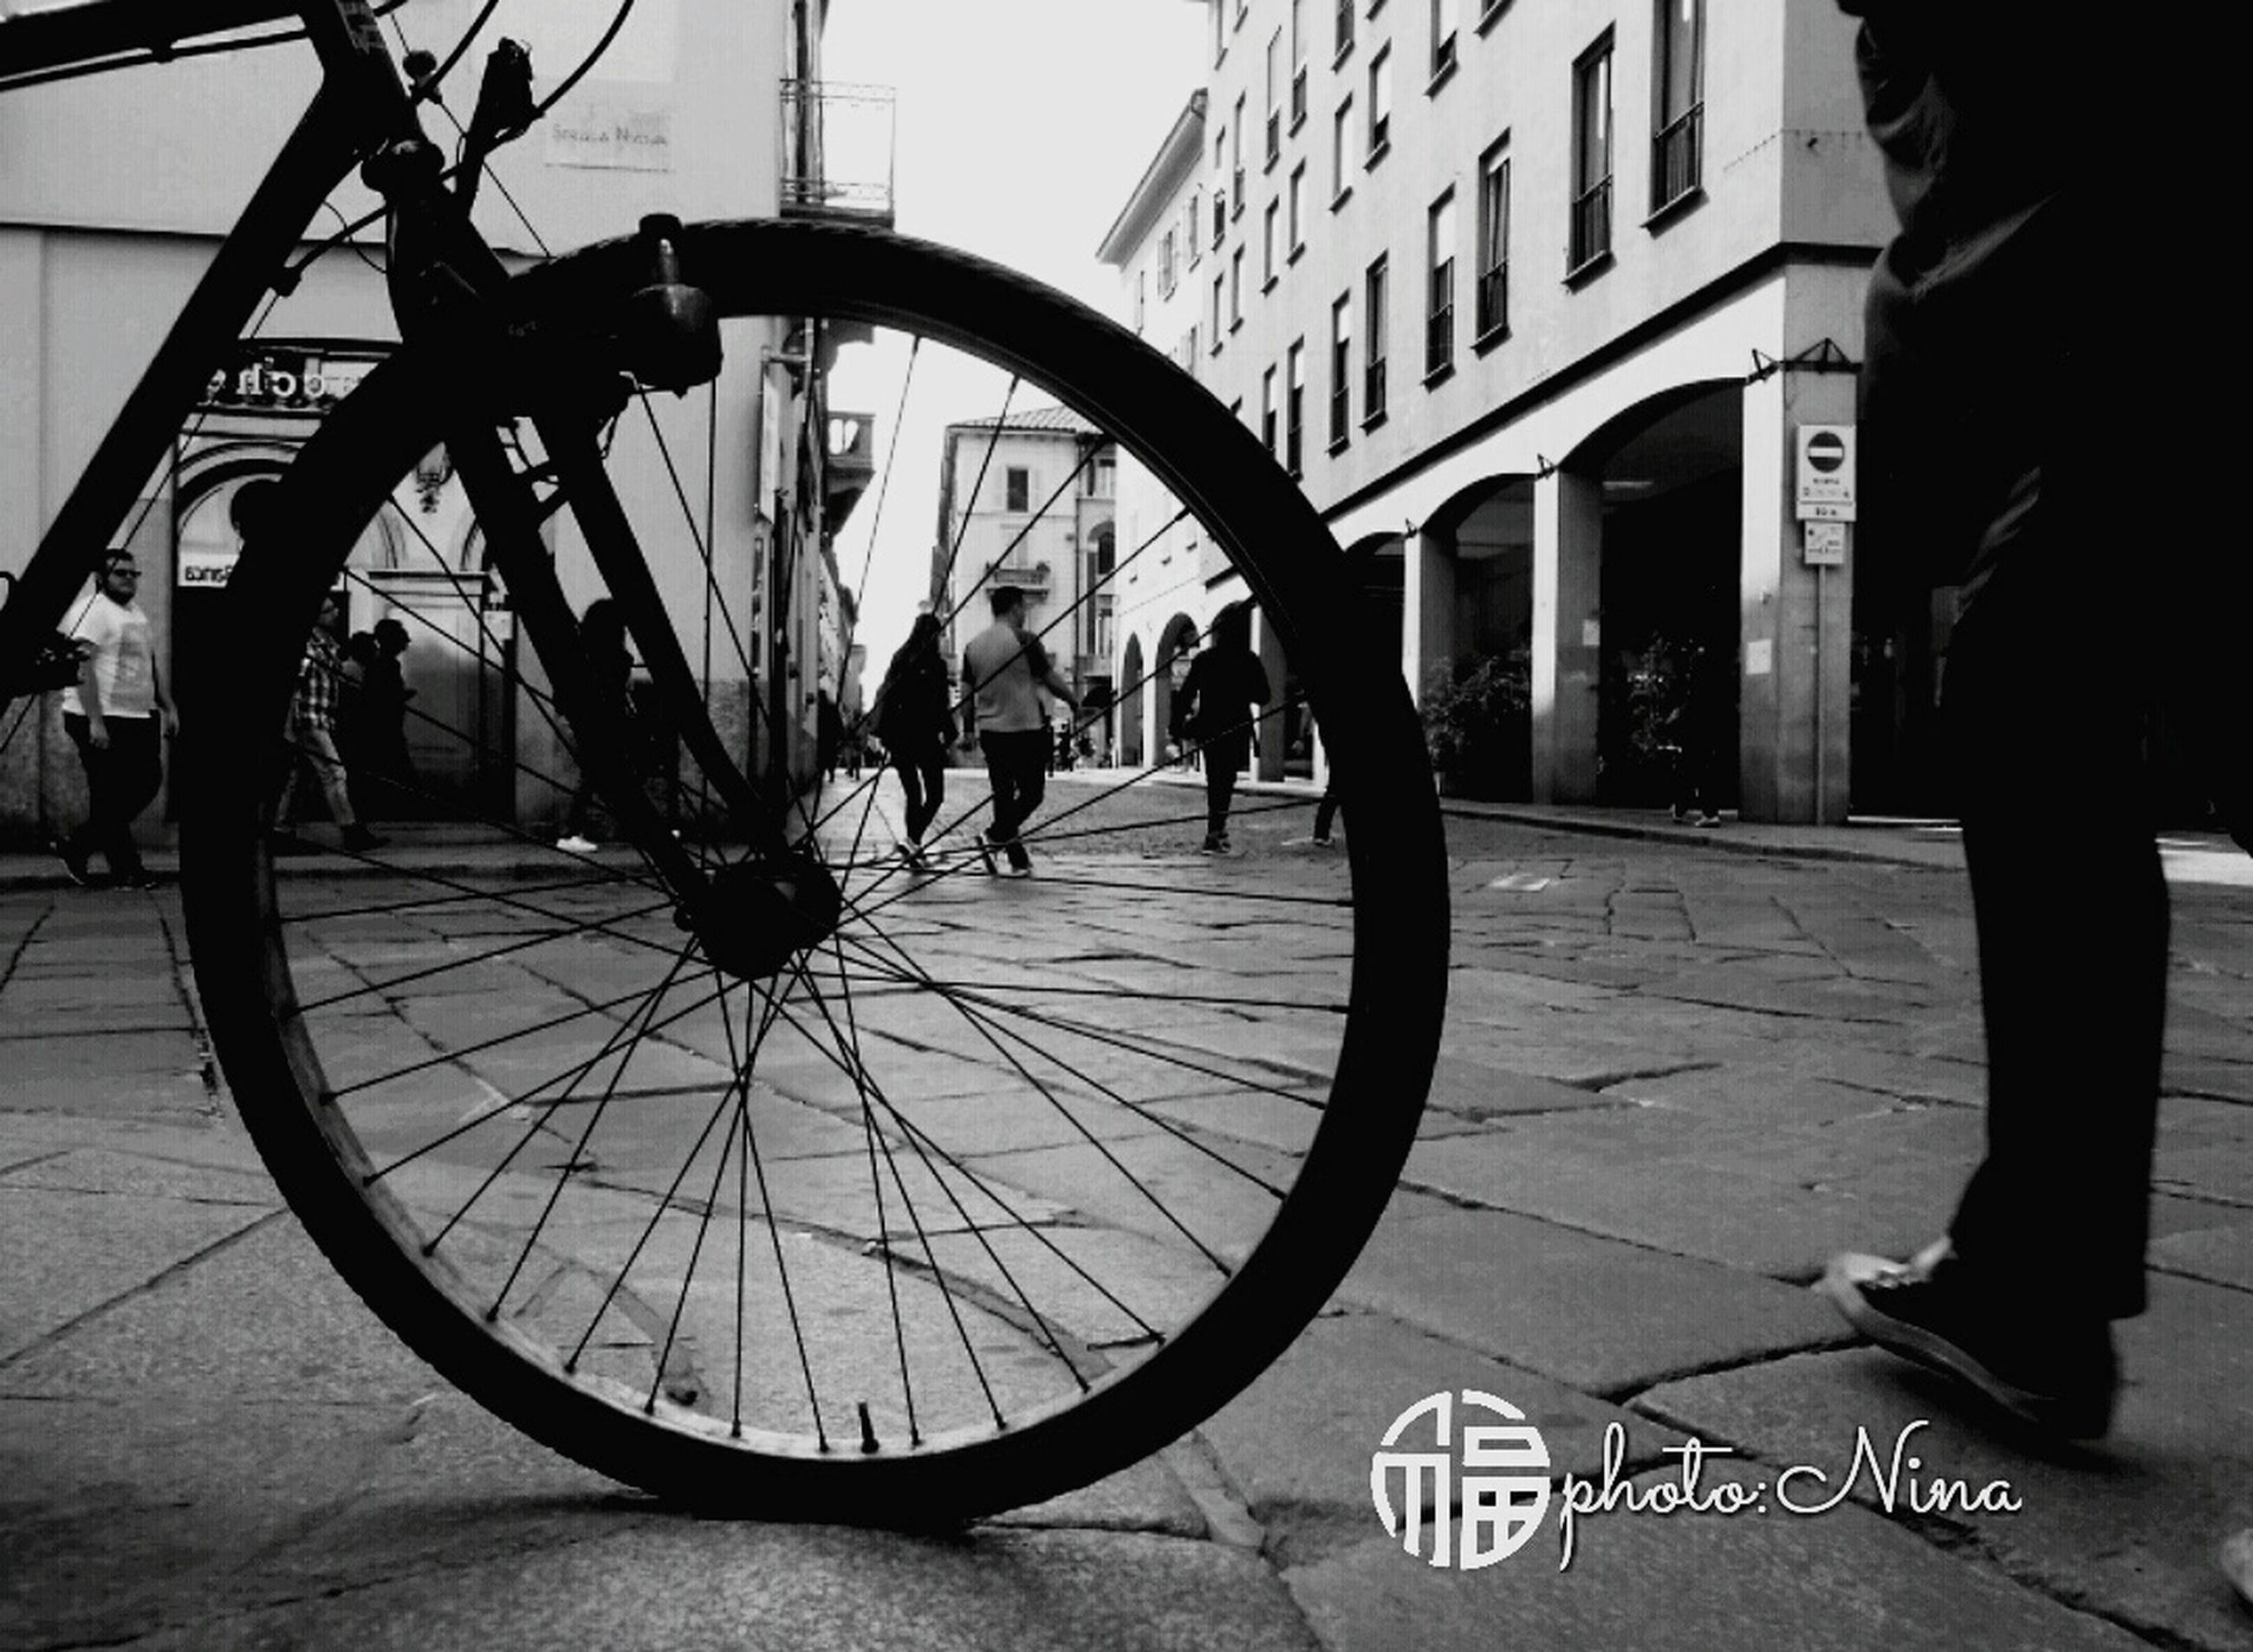 bicycle, building exterior, transportation, architecture, mode of transport, built structure, street, city, city life, wheel, land vehicle, cycling, city street, person, outdoors, day, parked